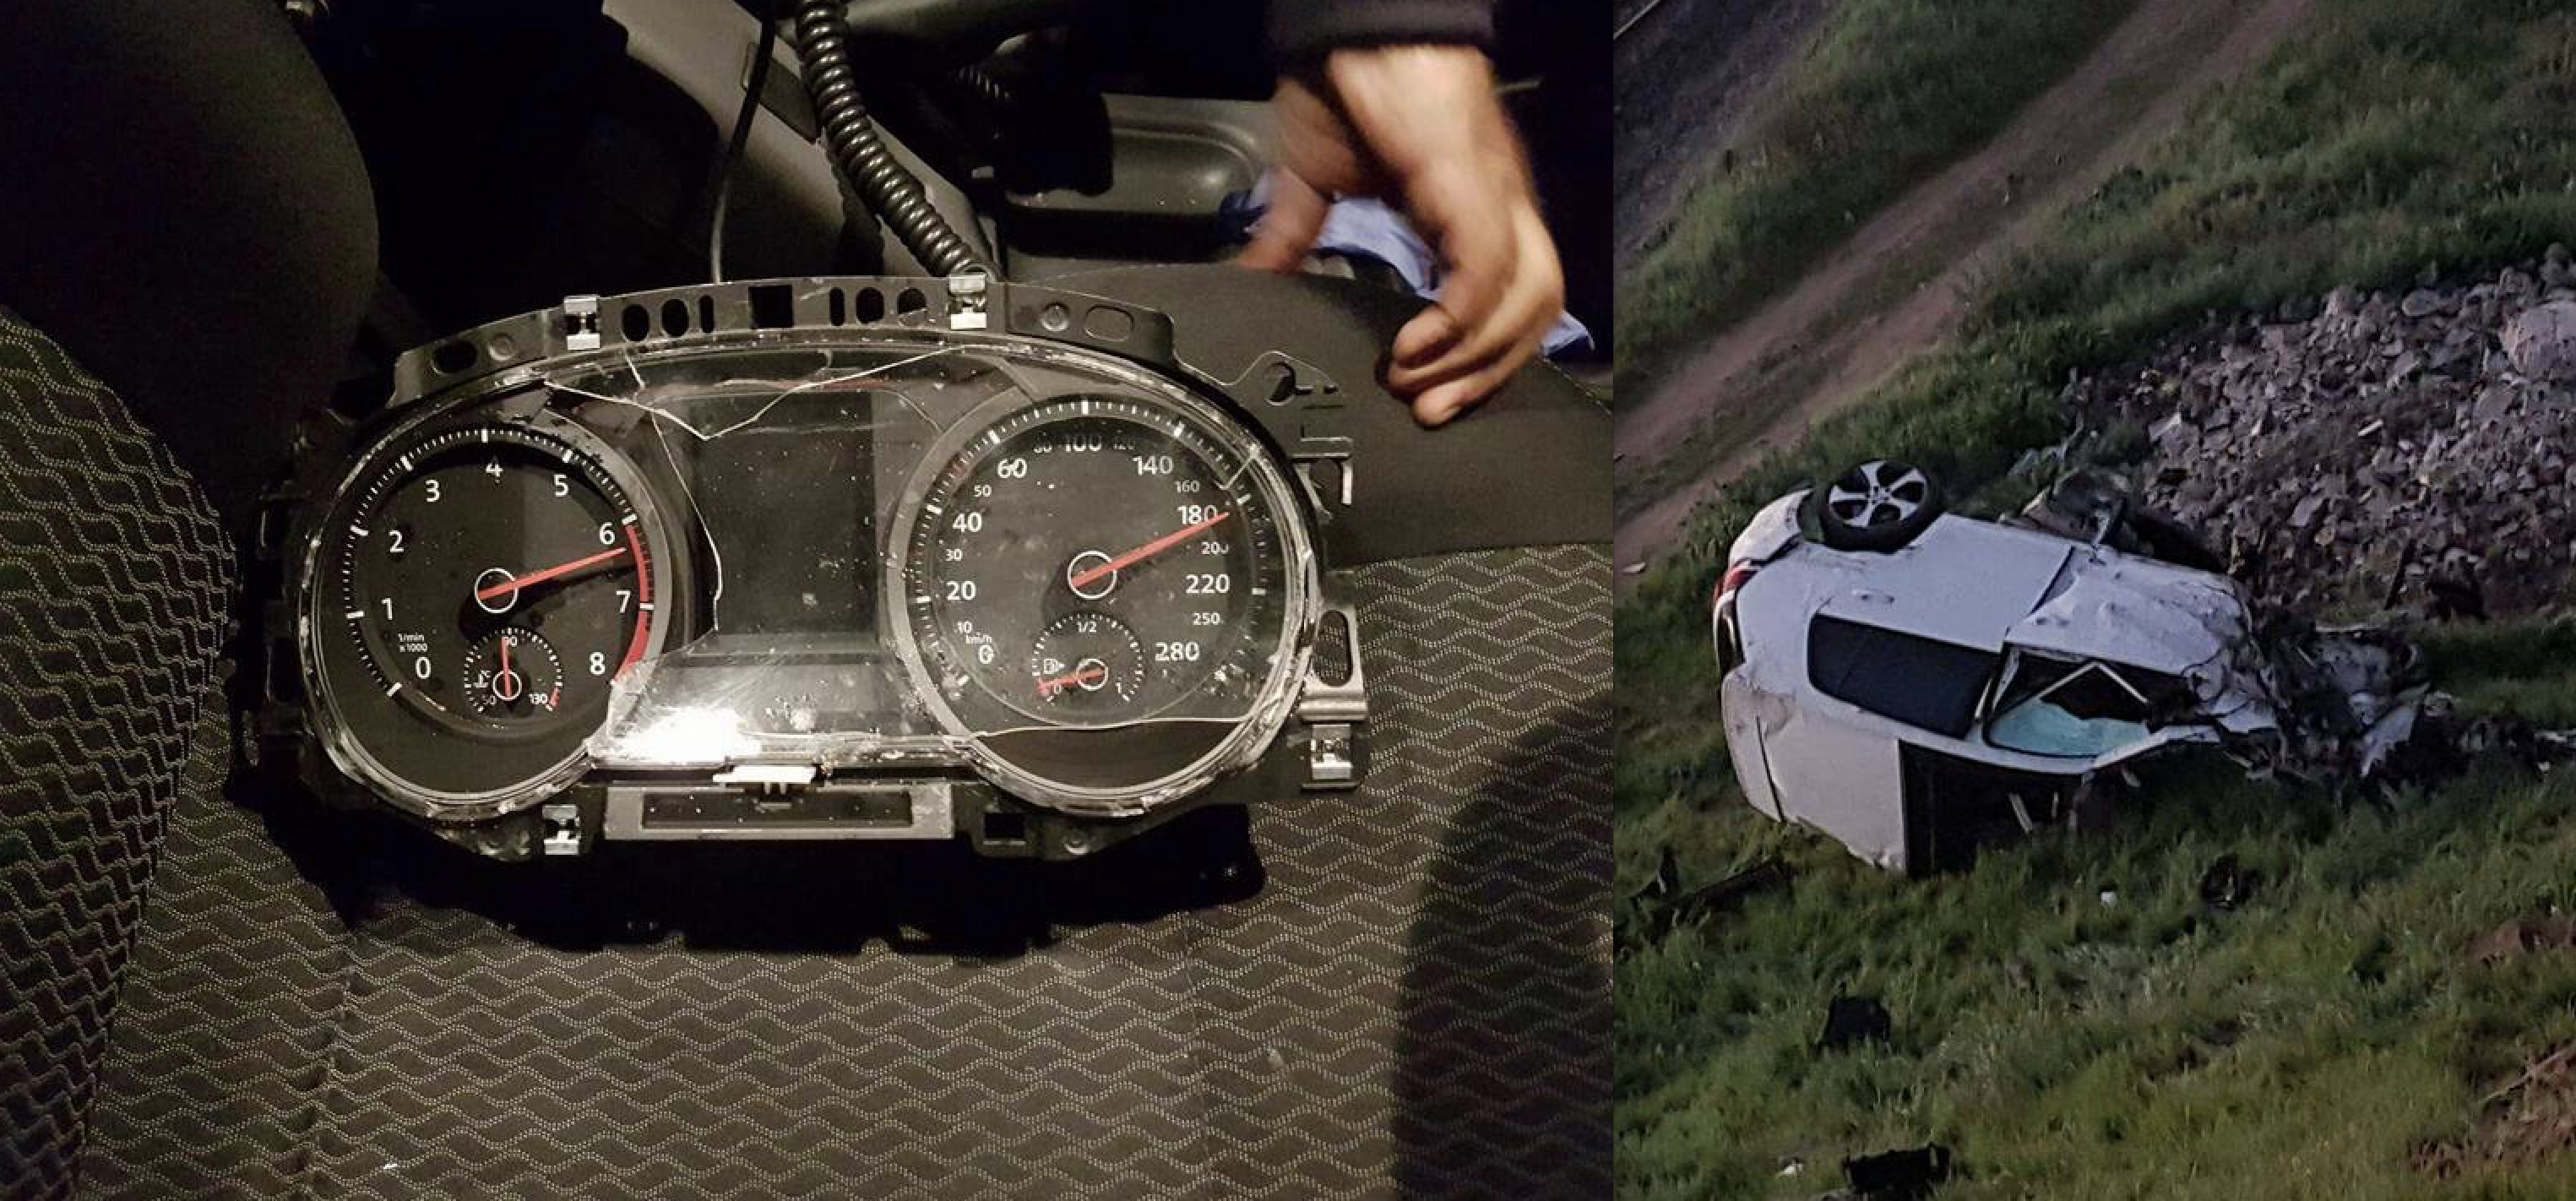 PICTURES: THE SPEEDOMETER OF VW GOLF AFTER FATAL CRASH